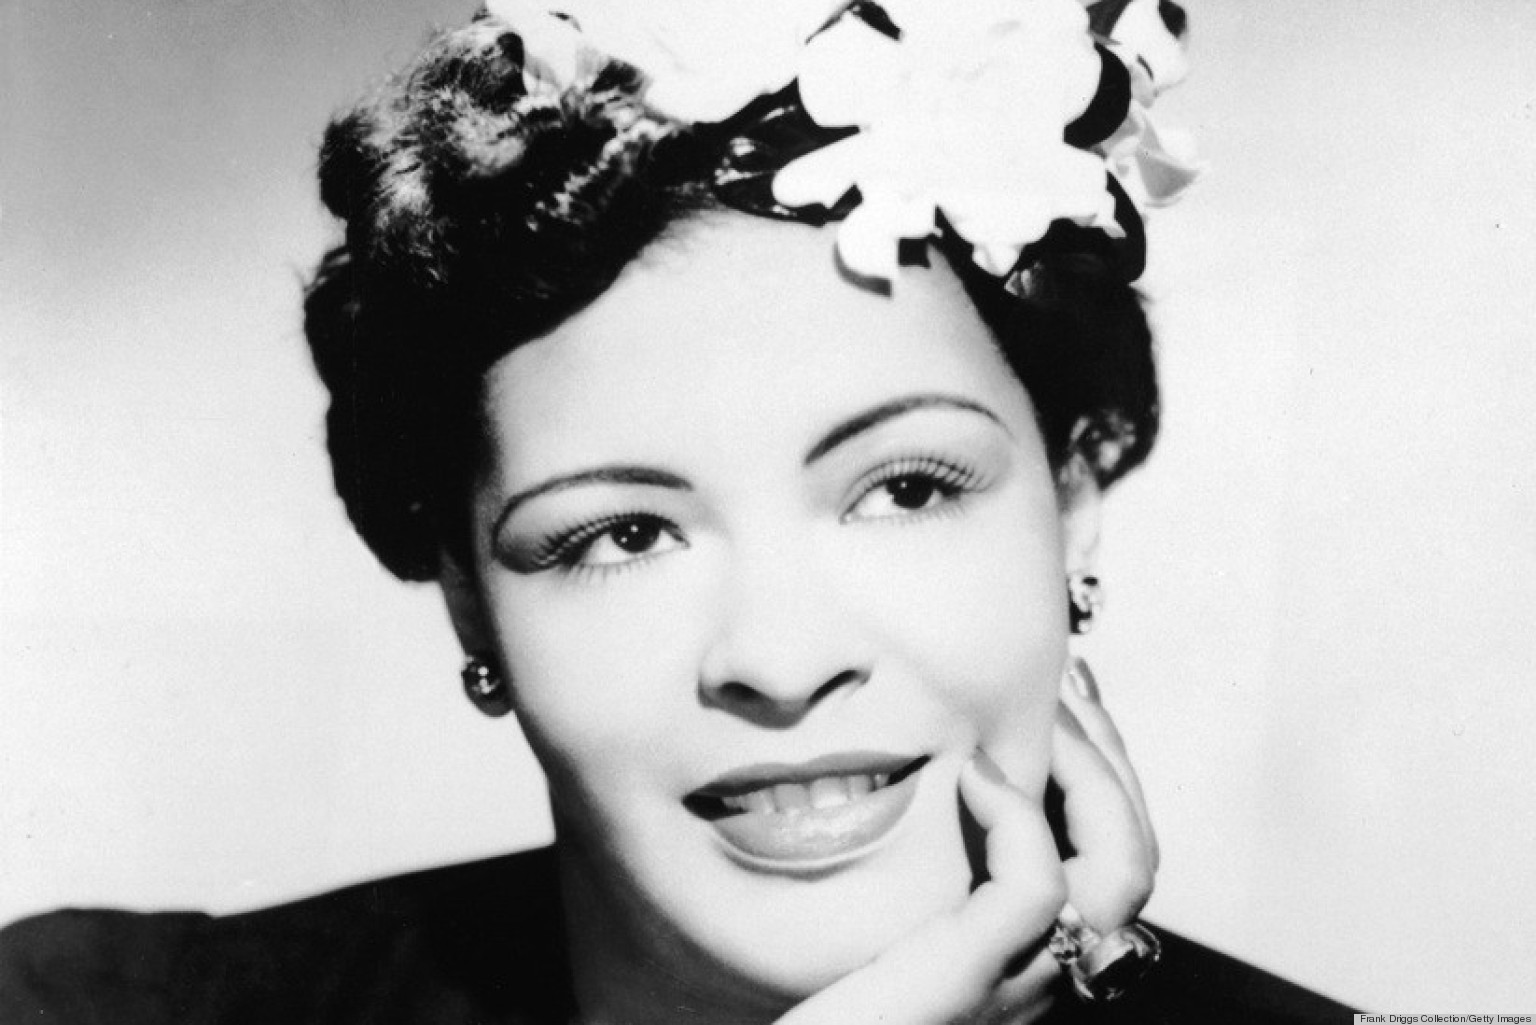 The very best Billie Holiday, in honor of her 100th birthday